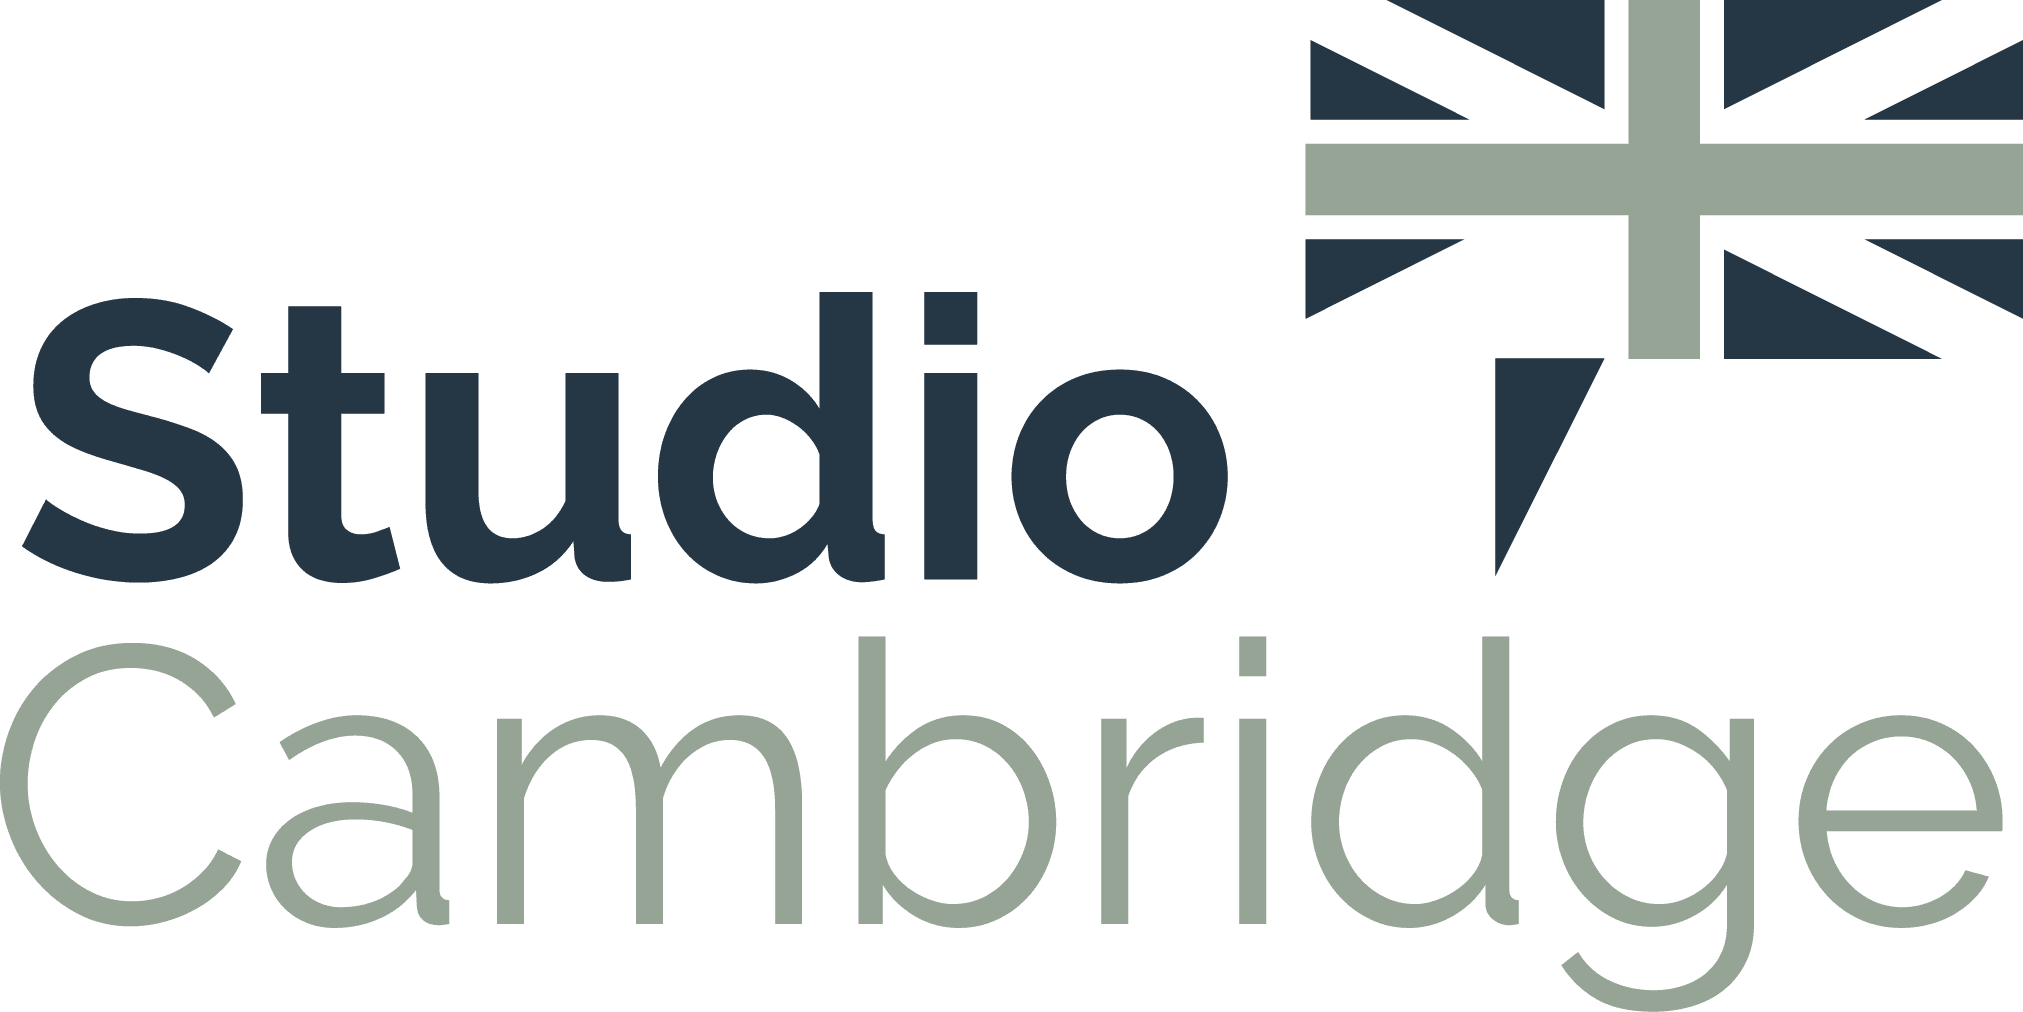 Studio Cambridge - Sir Henry Yaz Okulu Logo